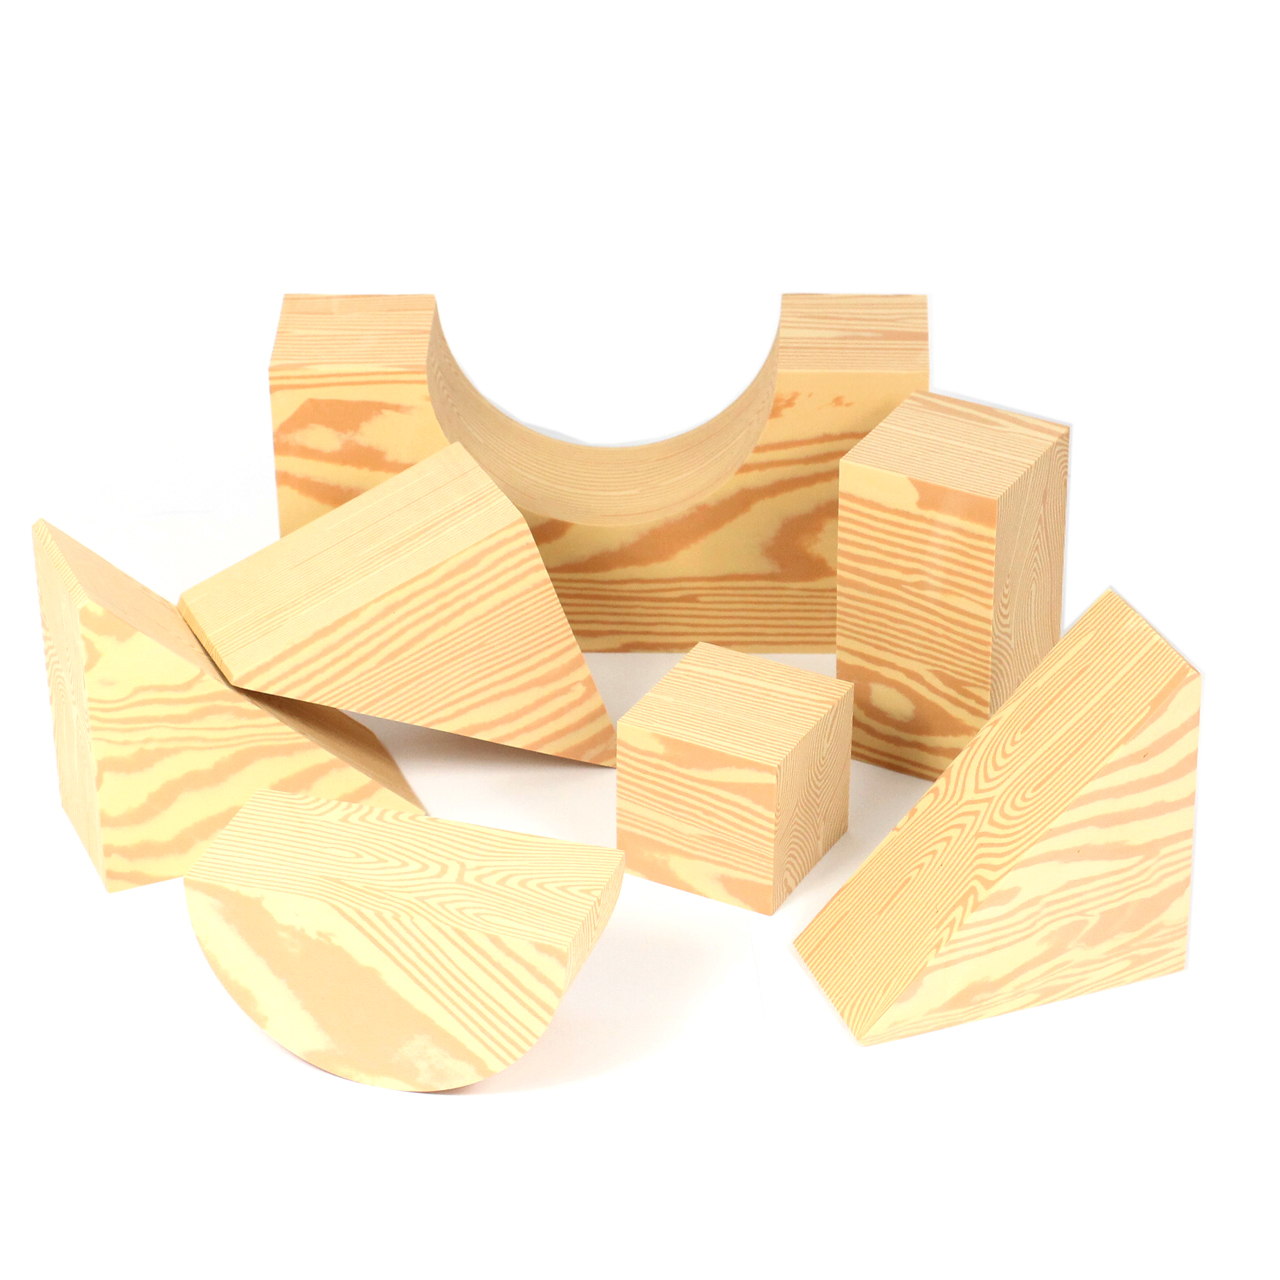 Bricks Natural Wood Effect, Soft Foam Mixed Shapes Set of 32